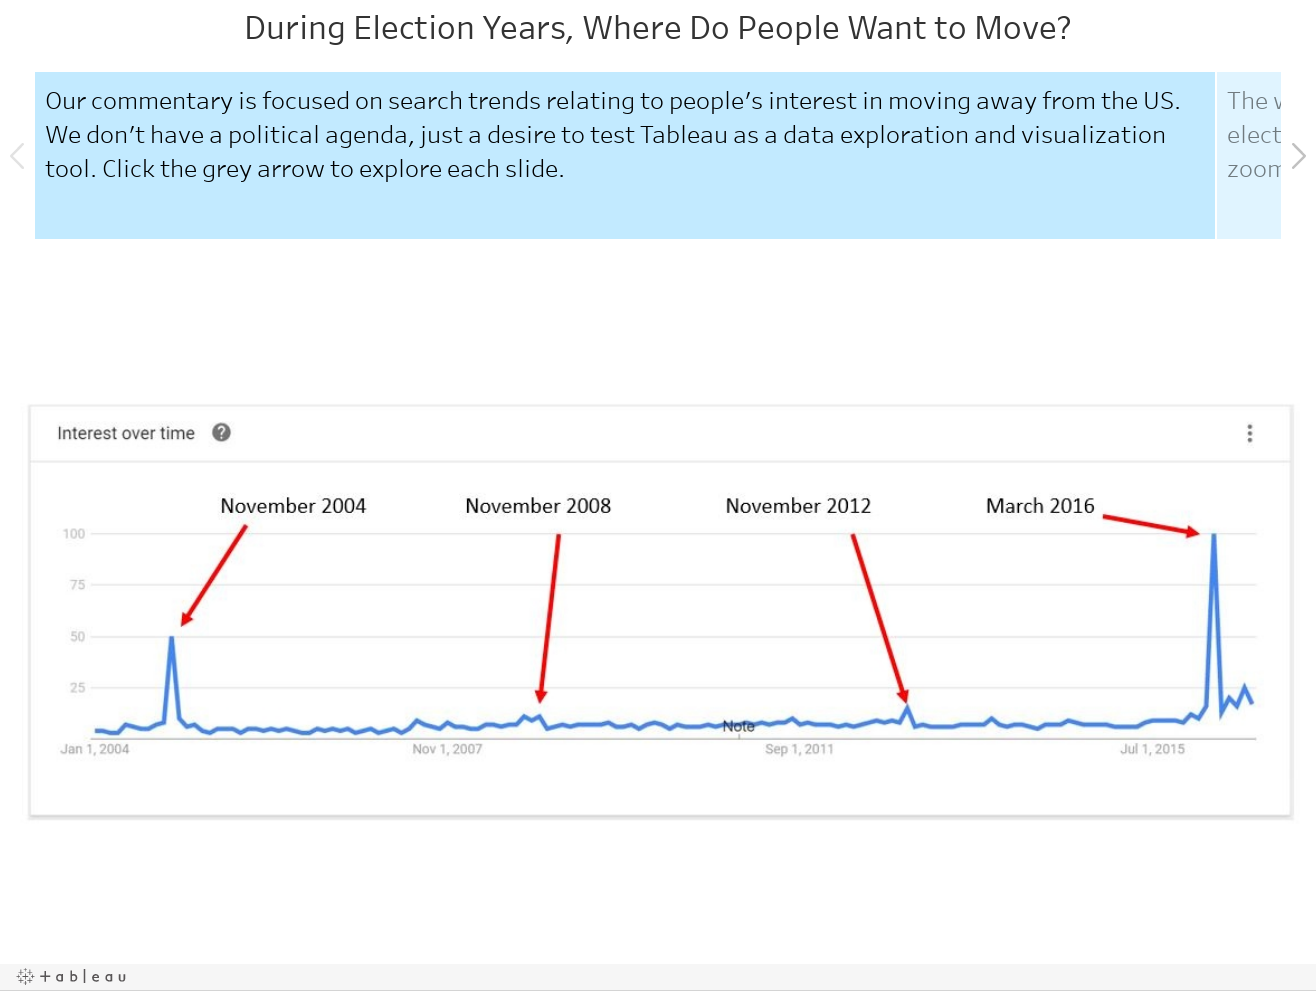 During Election Years, Where Do People Search to Move?